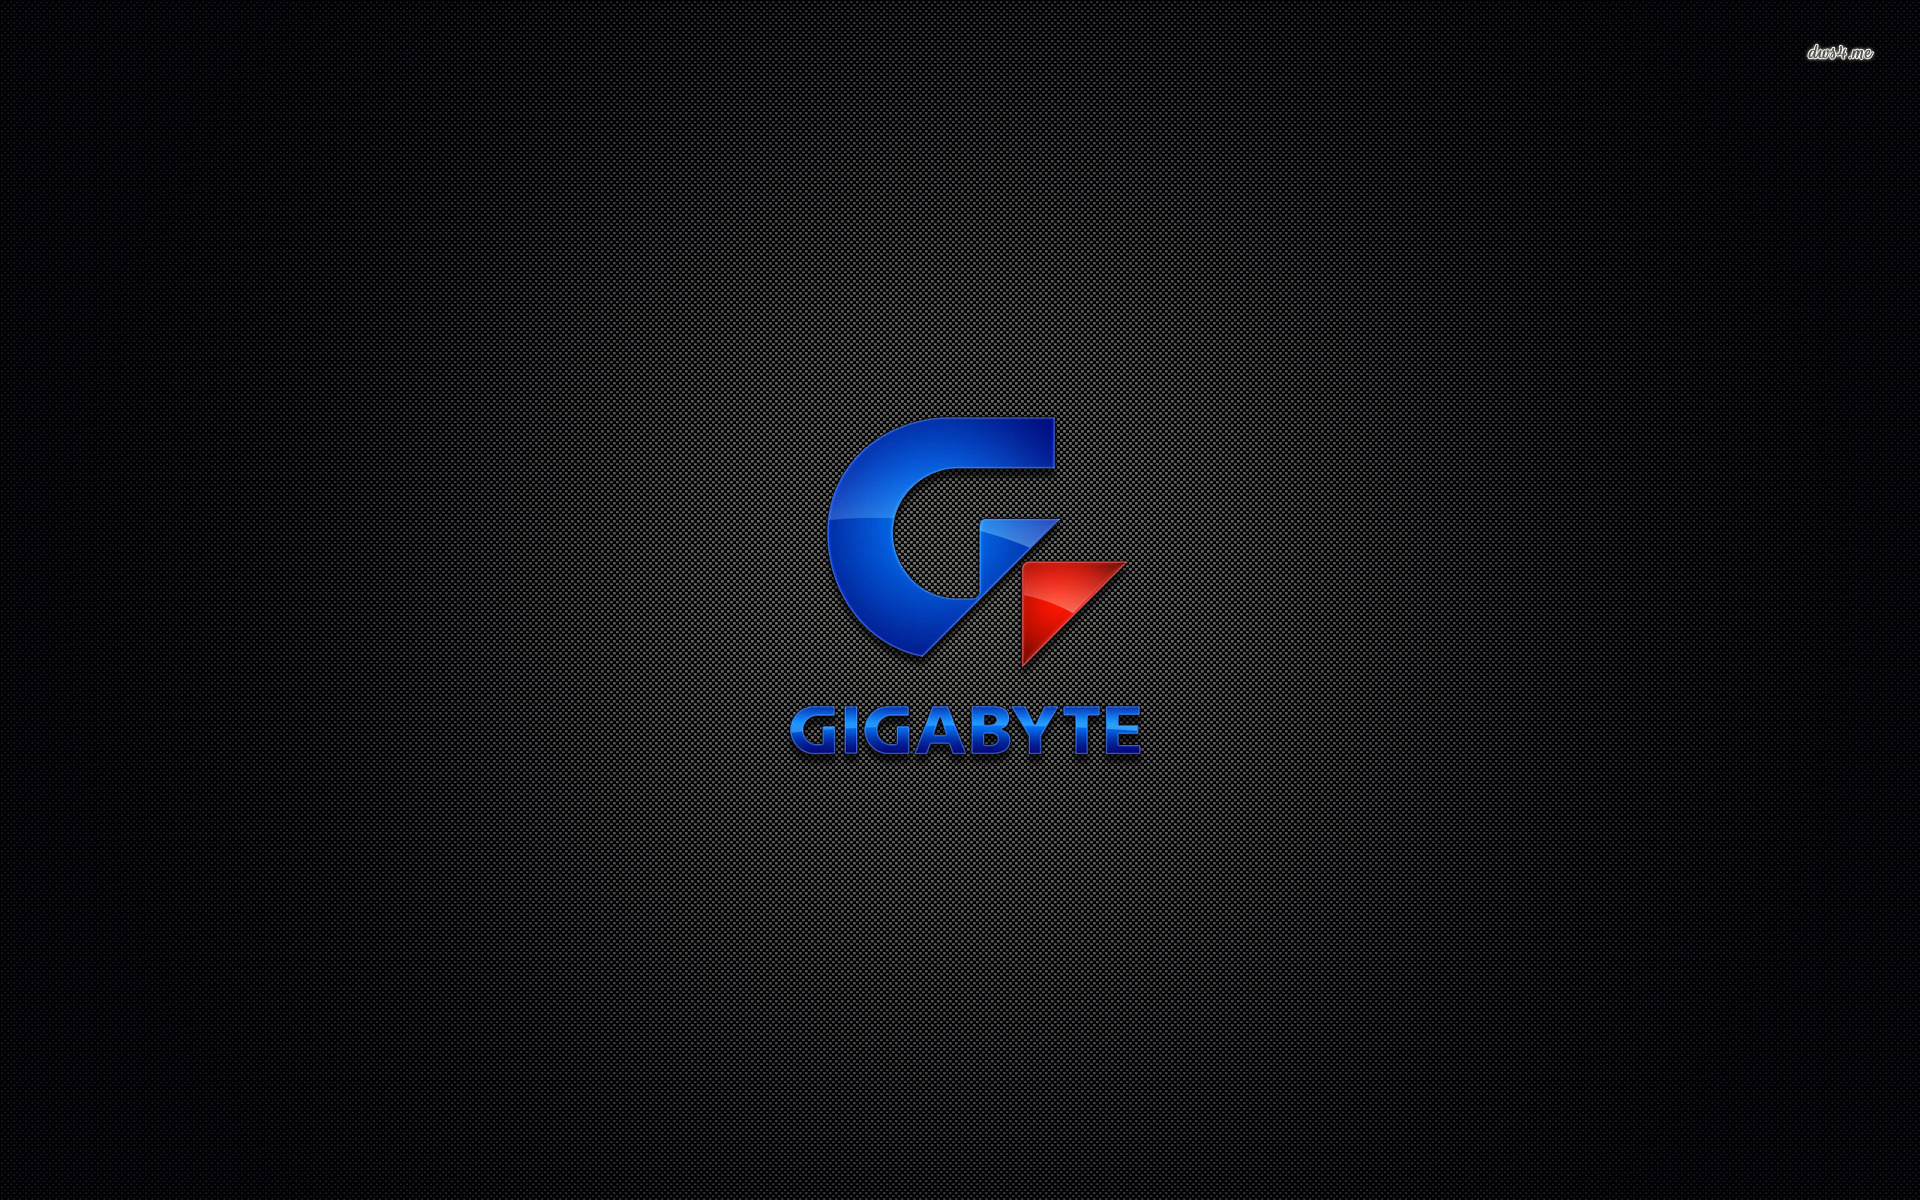 gigabyte computer wallpapers myspace - photo #10